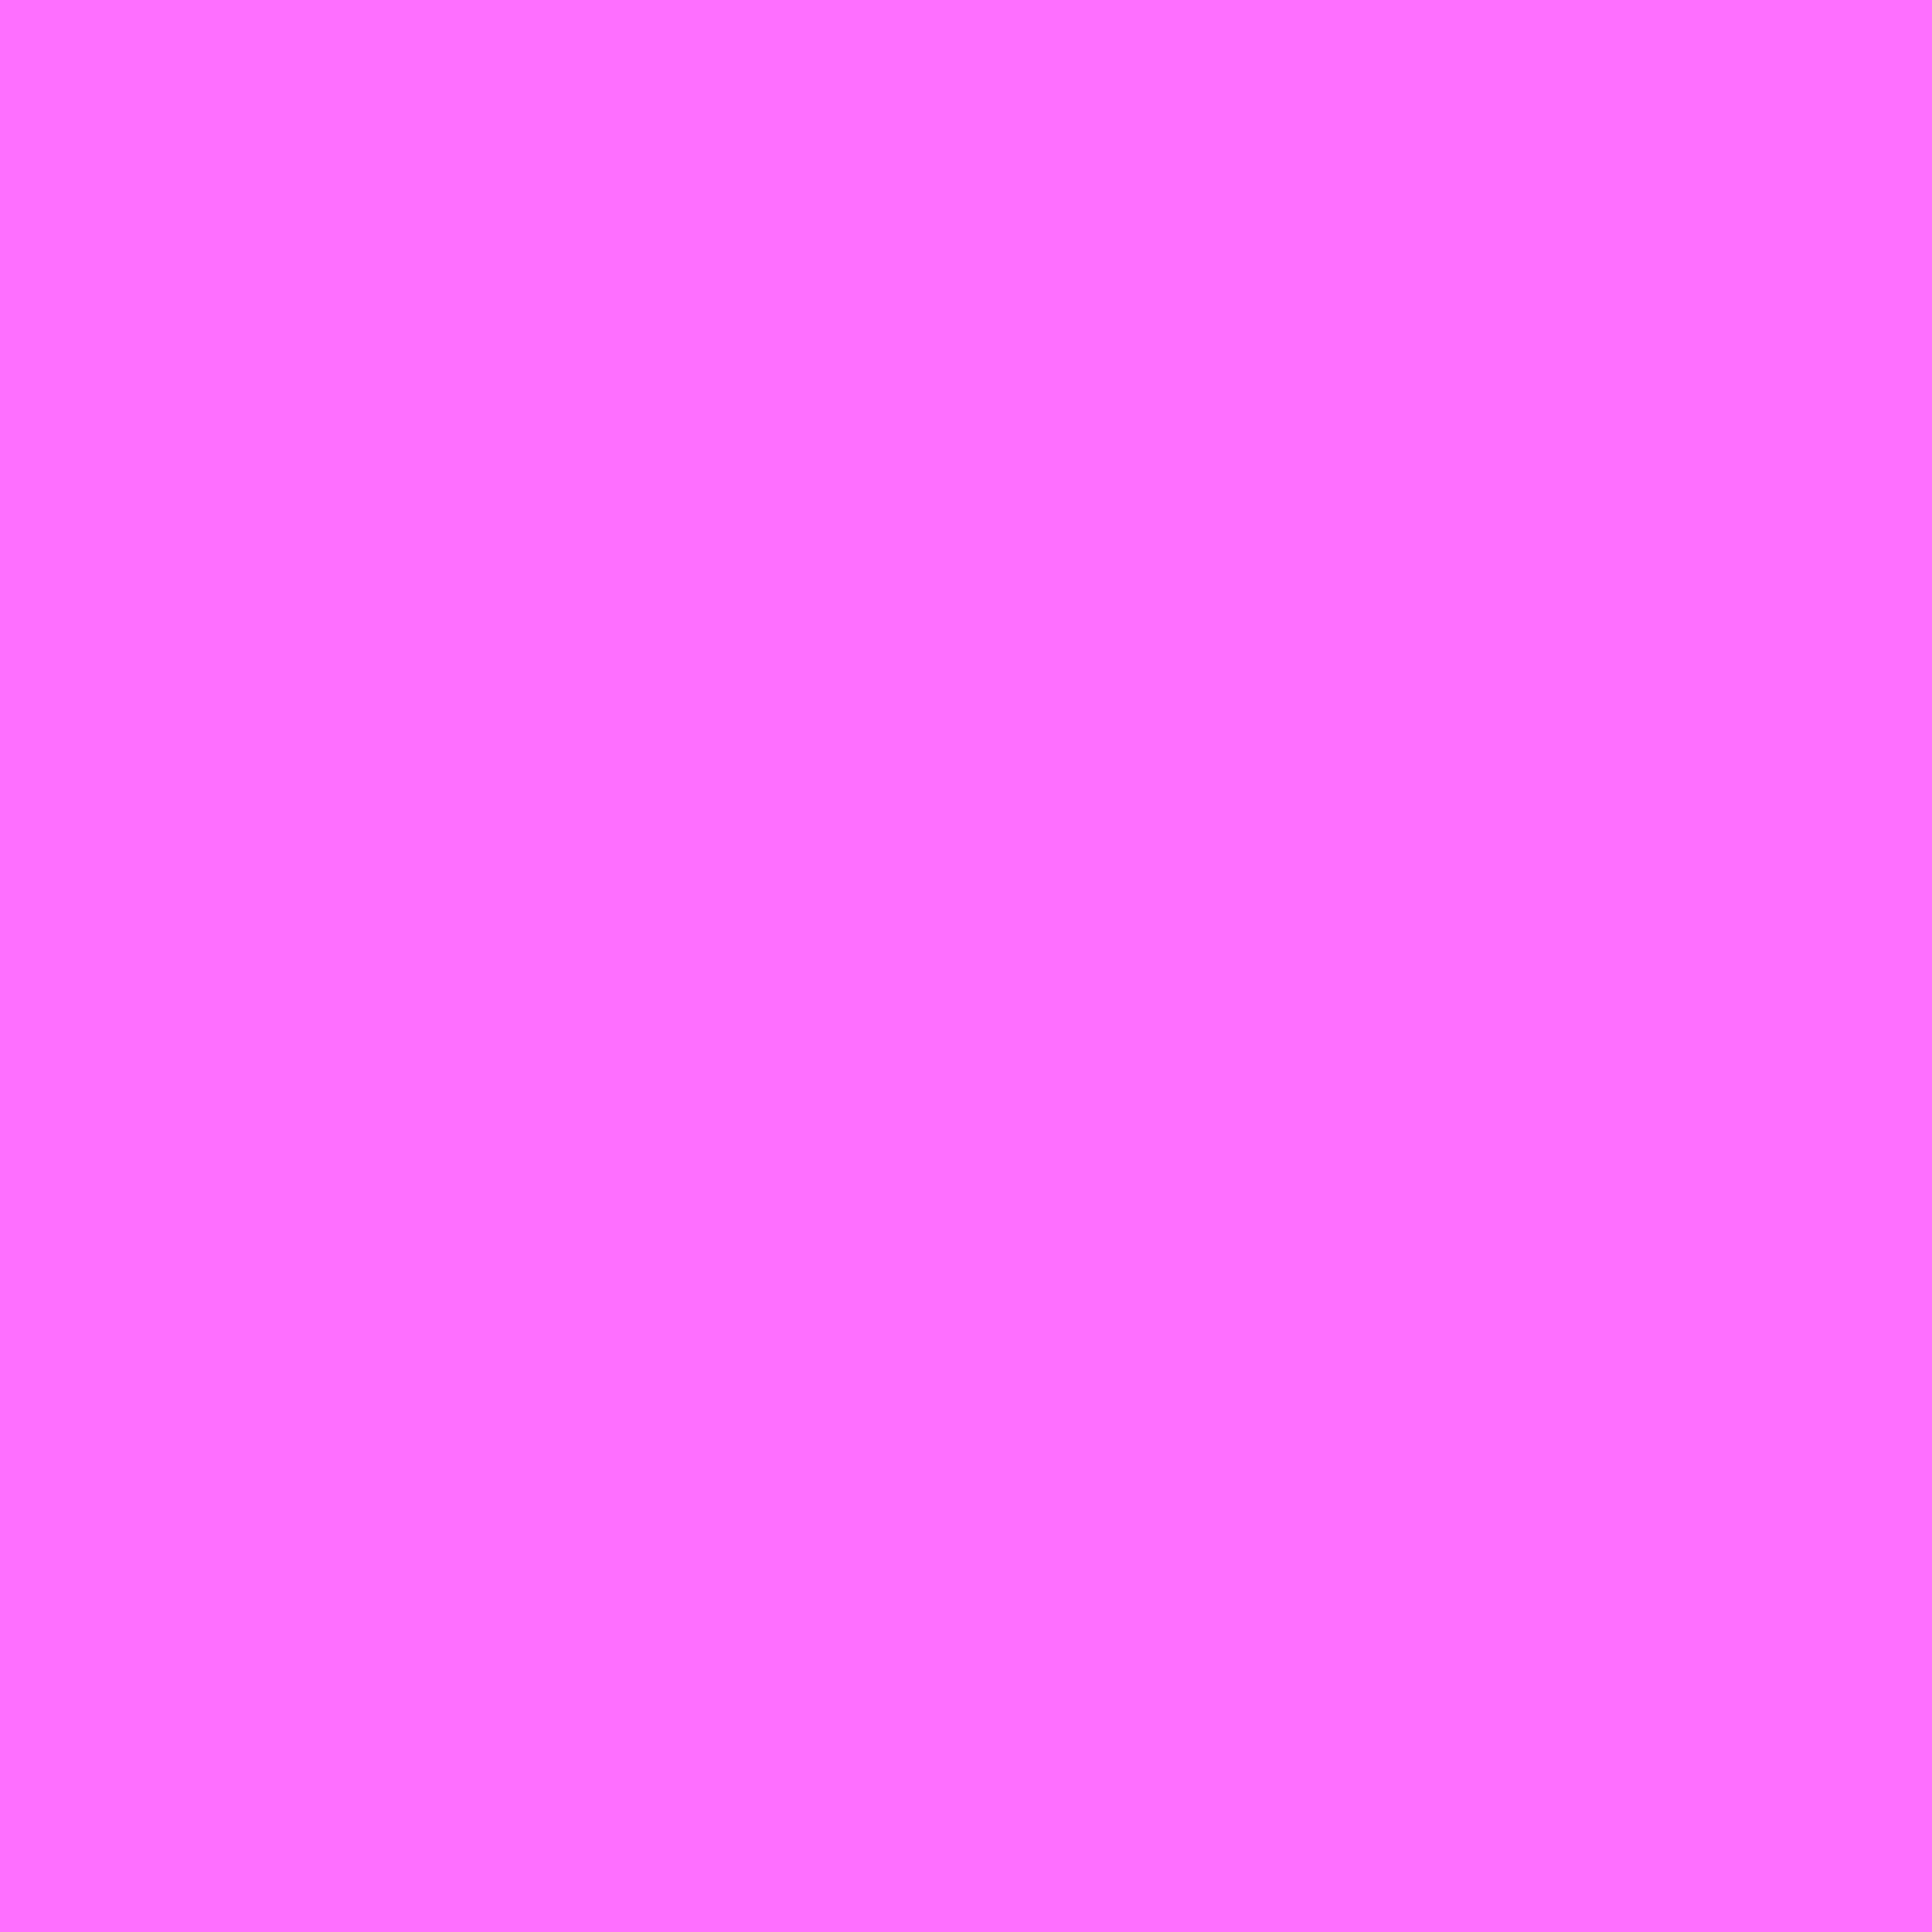 3600x3600 Shocking Pink Crayola Solid Color Background